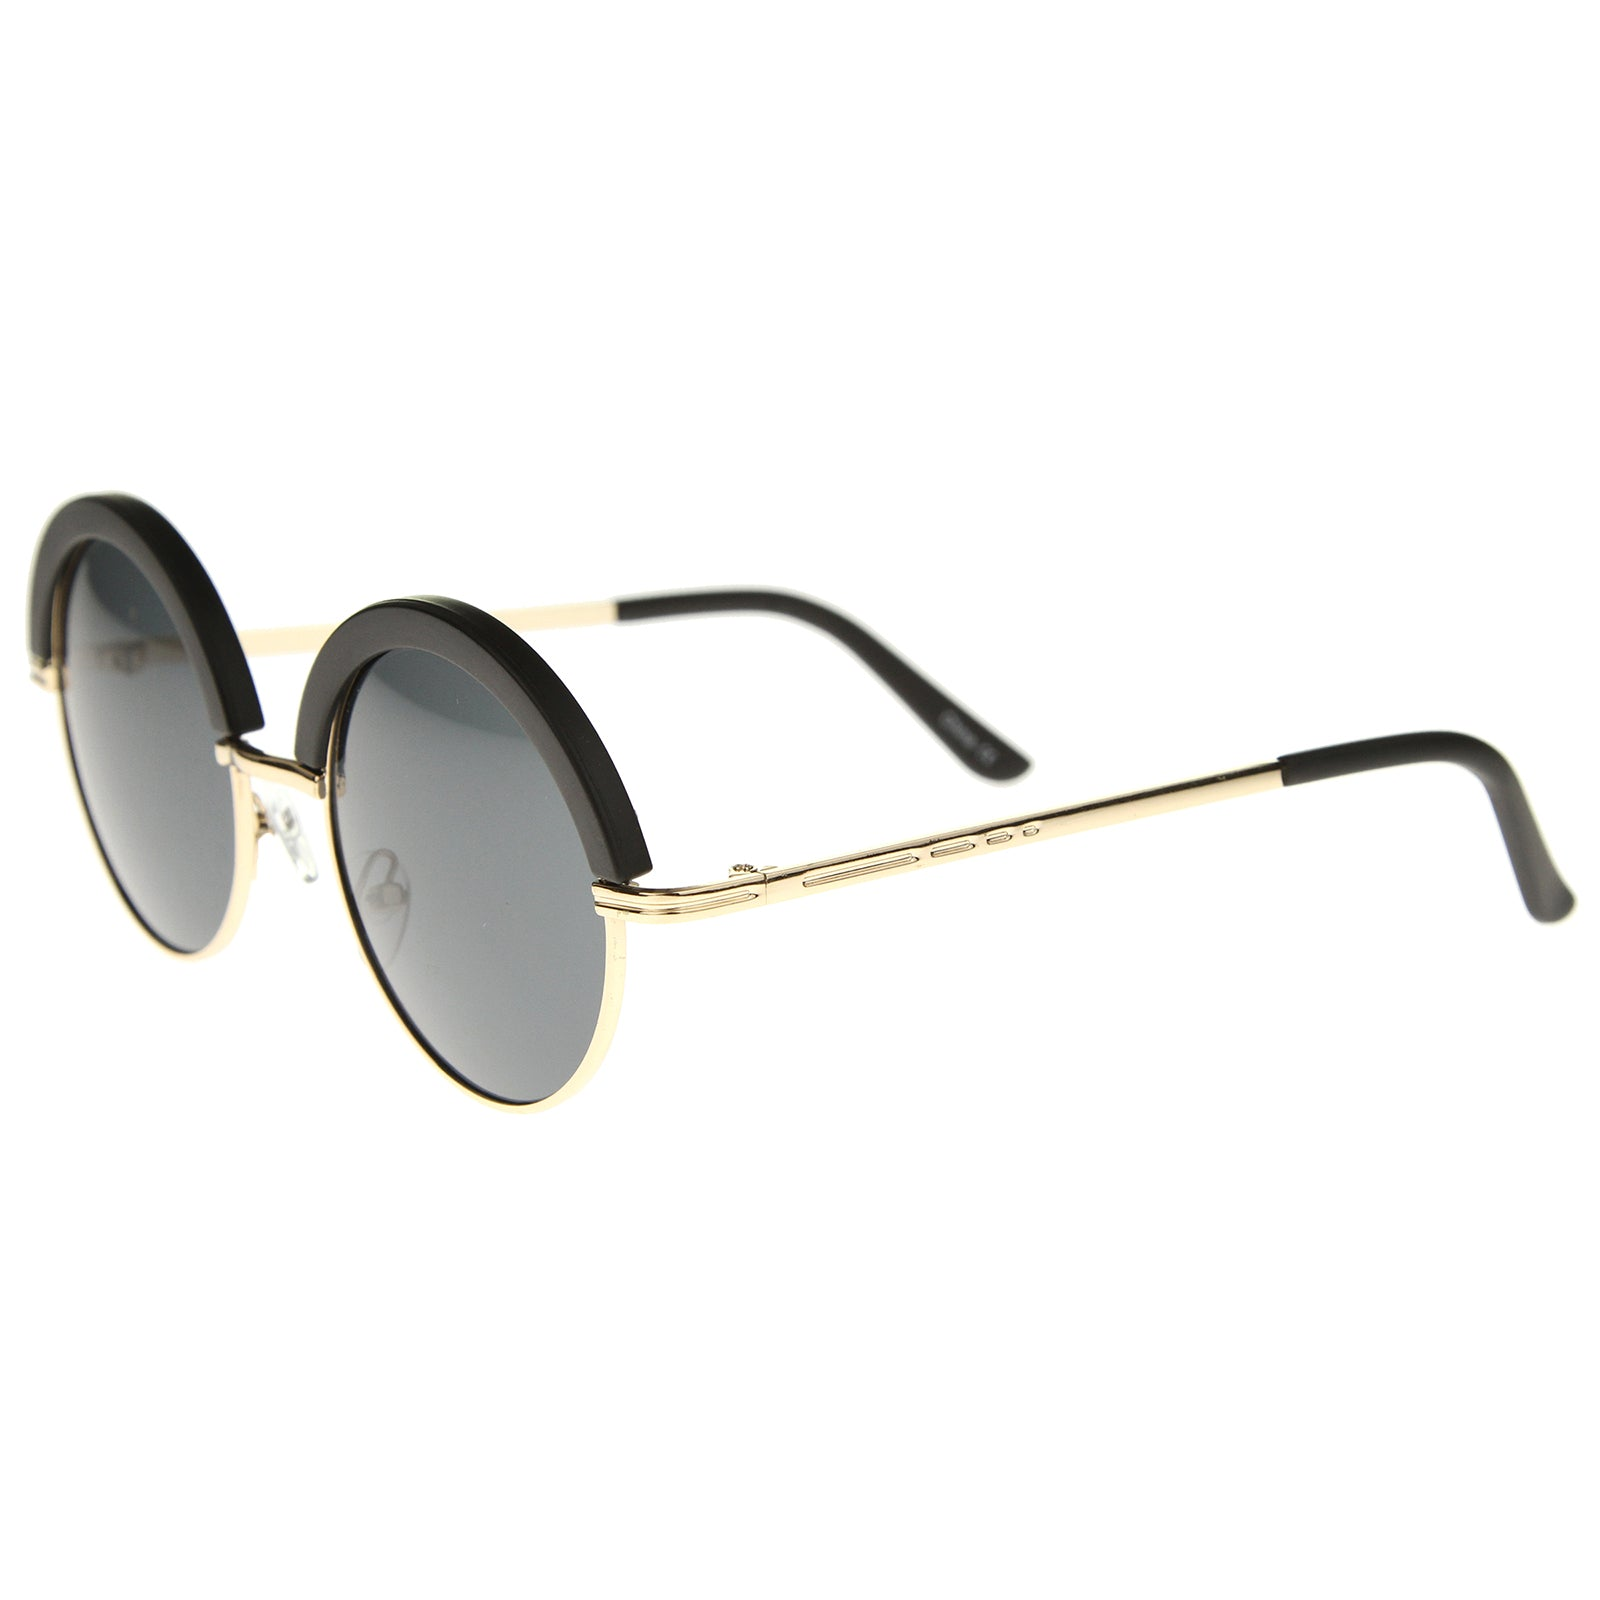 Womens Metal Round Sunglasses With UV400 Protected Composite Lens - sunglass.la - 3